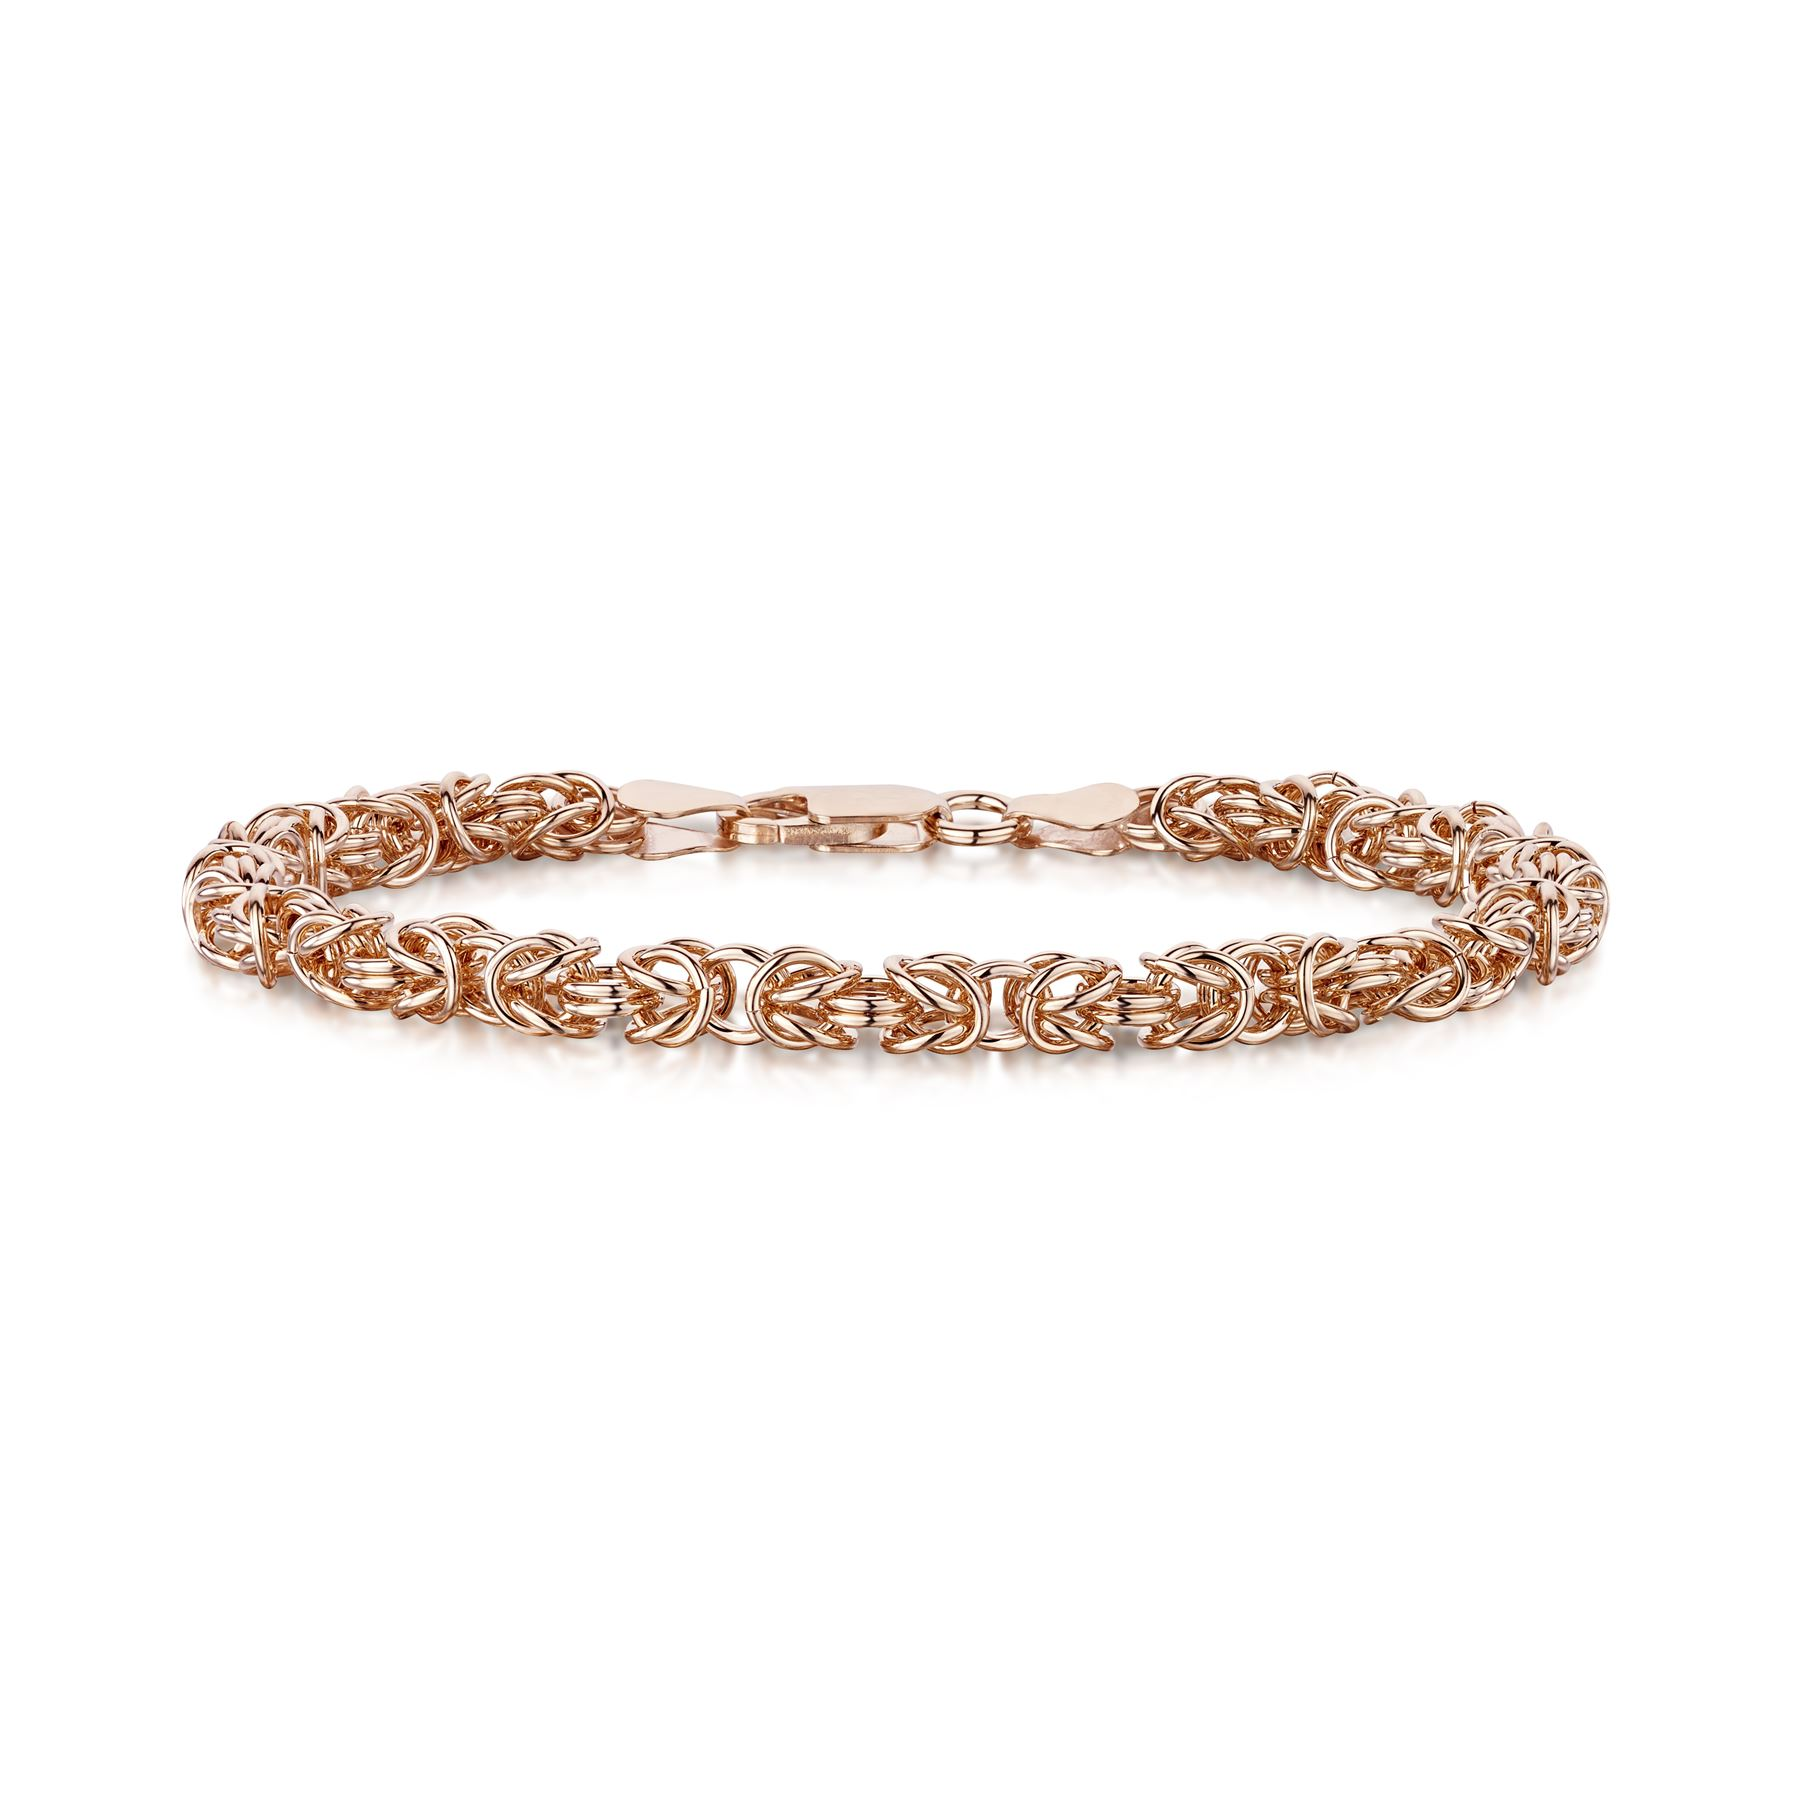 Amberta-Genuine-Real-925-Sterling-Silver-Chain-Bracelet-for-Women-from-Italy miniature 17